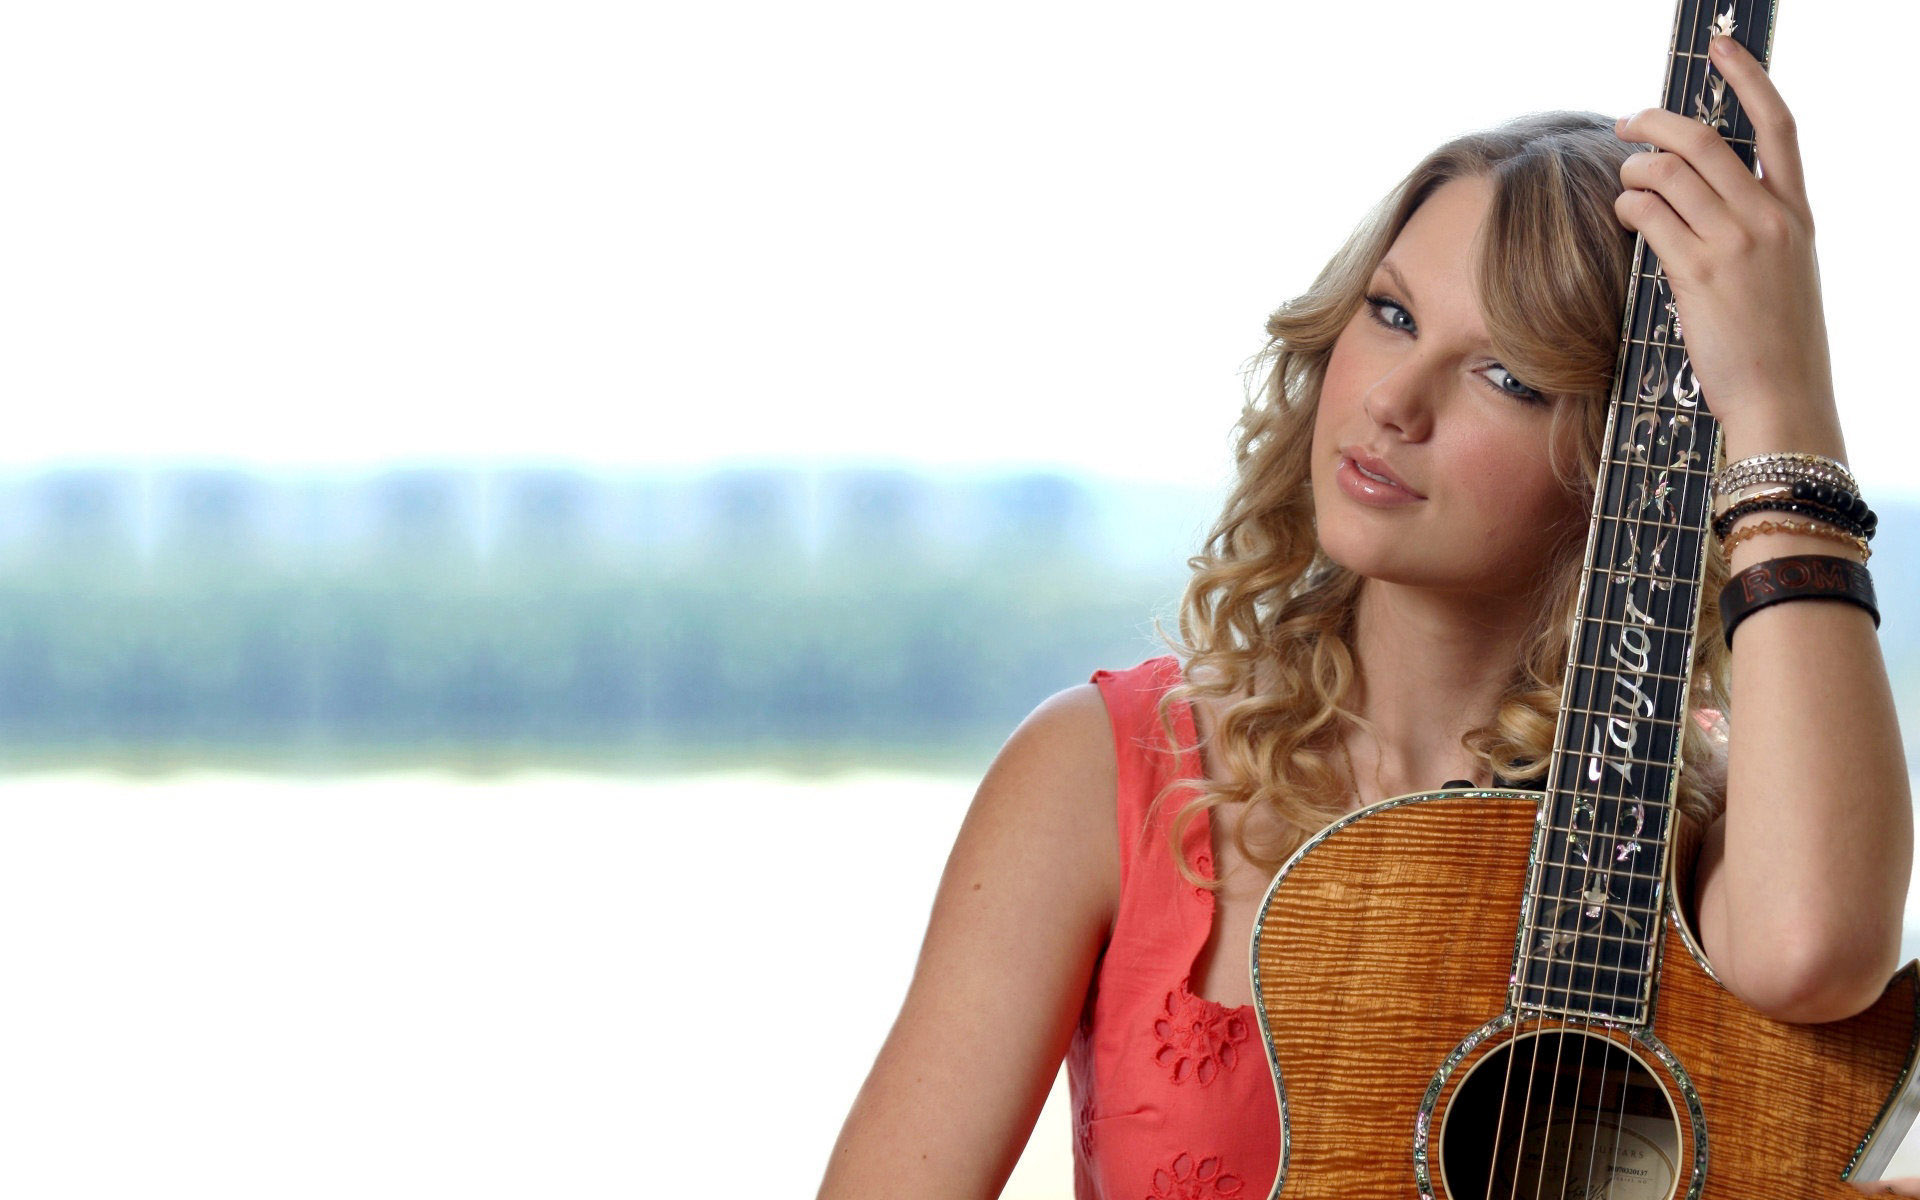 taylor swift free hd computer download background photo with beautiful music materials